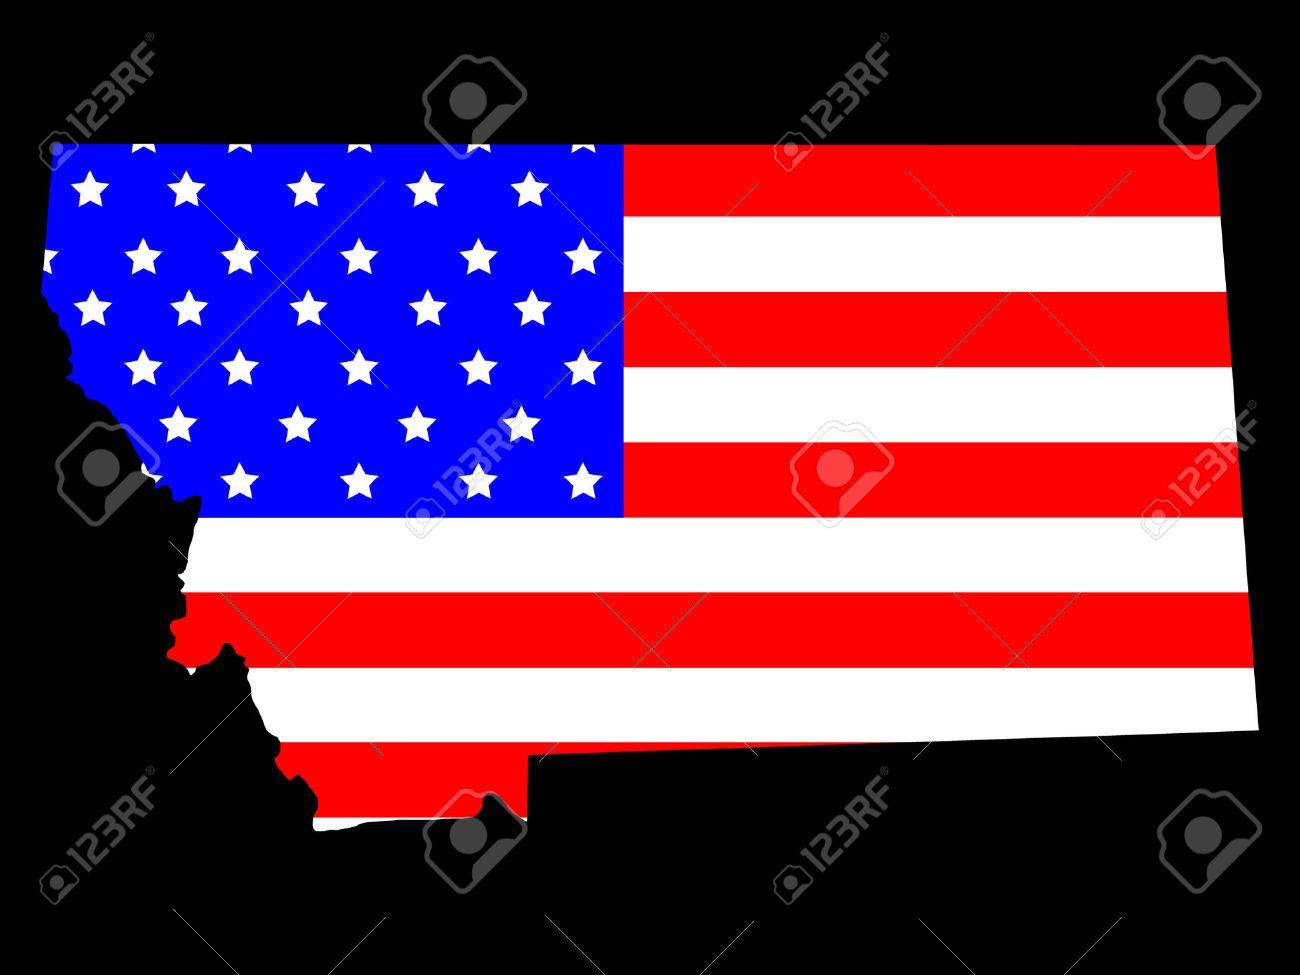 Map Of The State Of Montana And American Flag Royalty Free - Montana state usa map